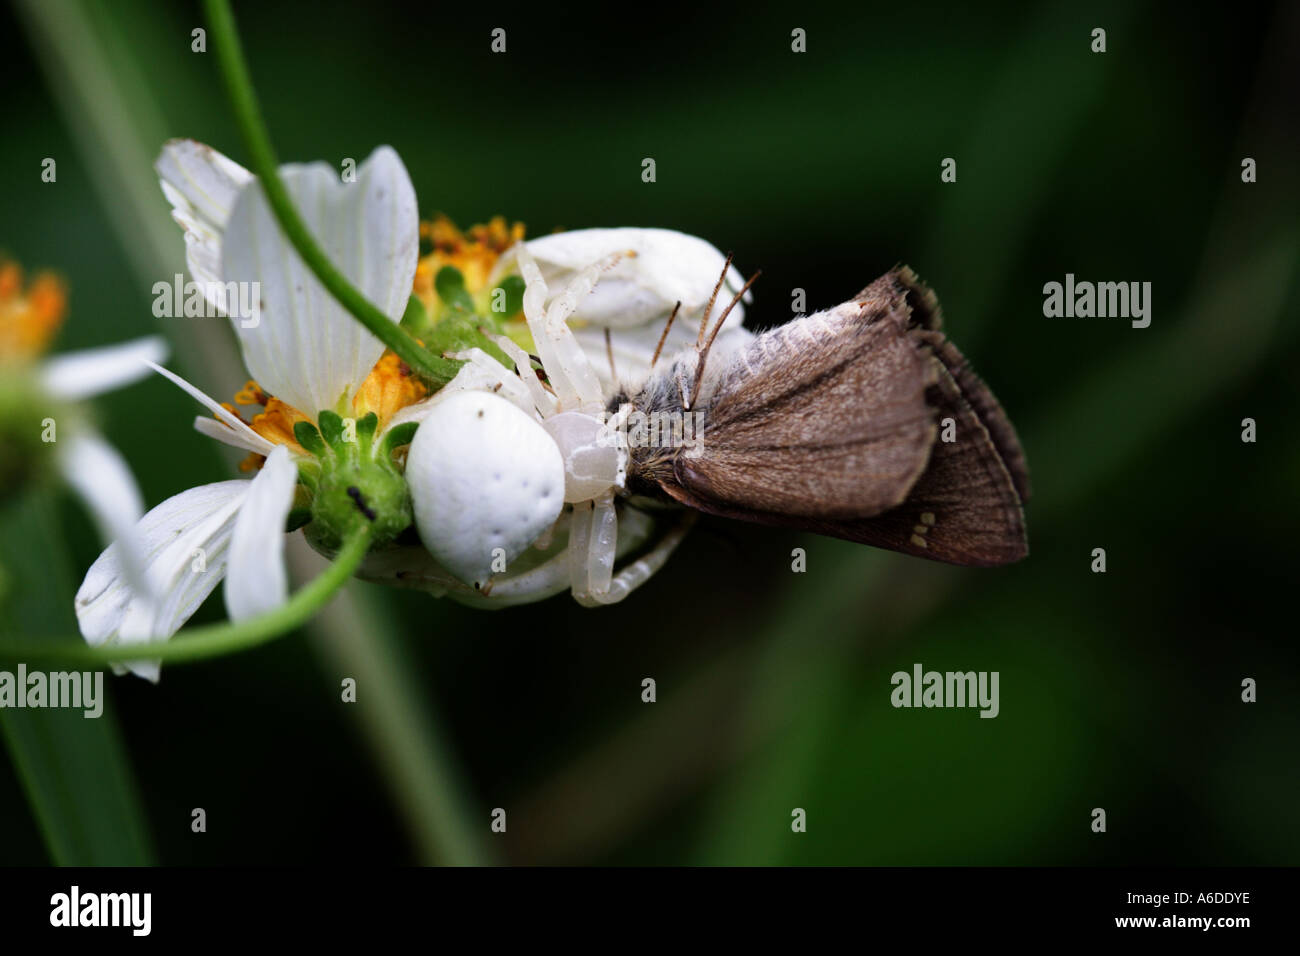 Thomisidae sp stock photos thomisidae sp stock images alamy close up of a white flower spider eating a moth bapda6186 stock image mightylinksfo